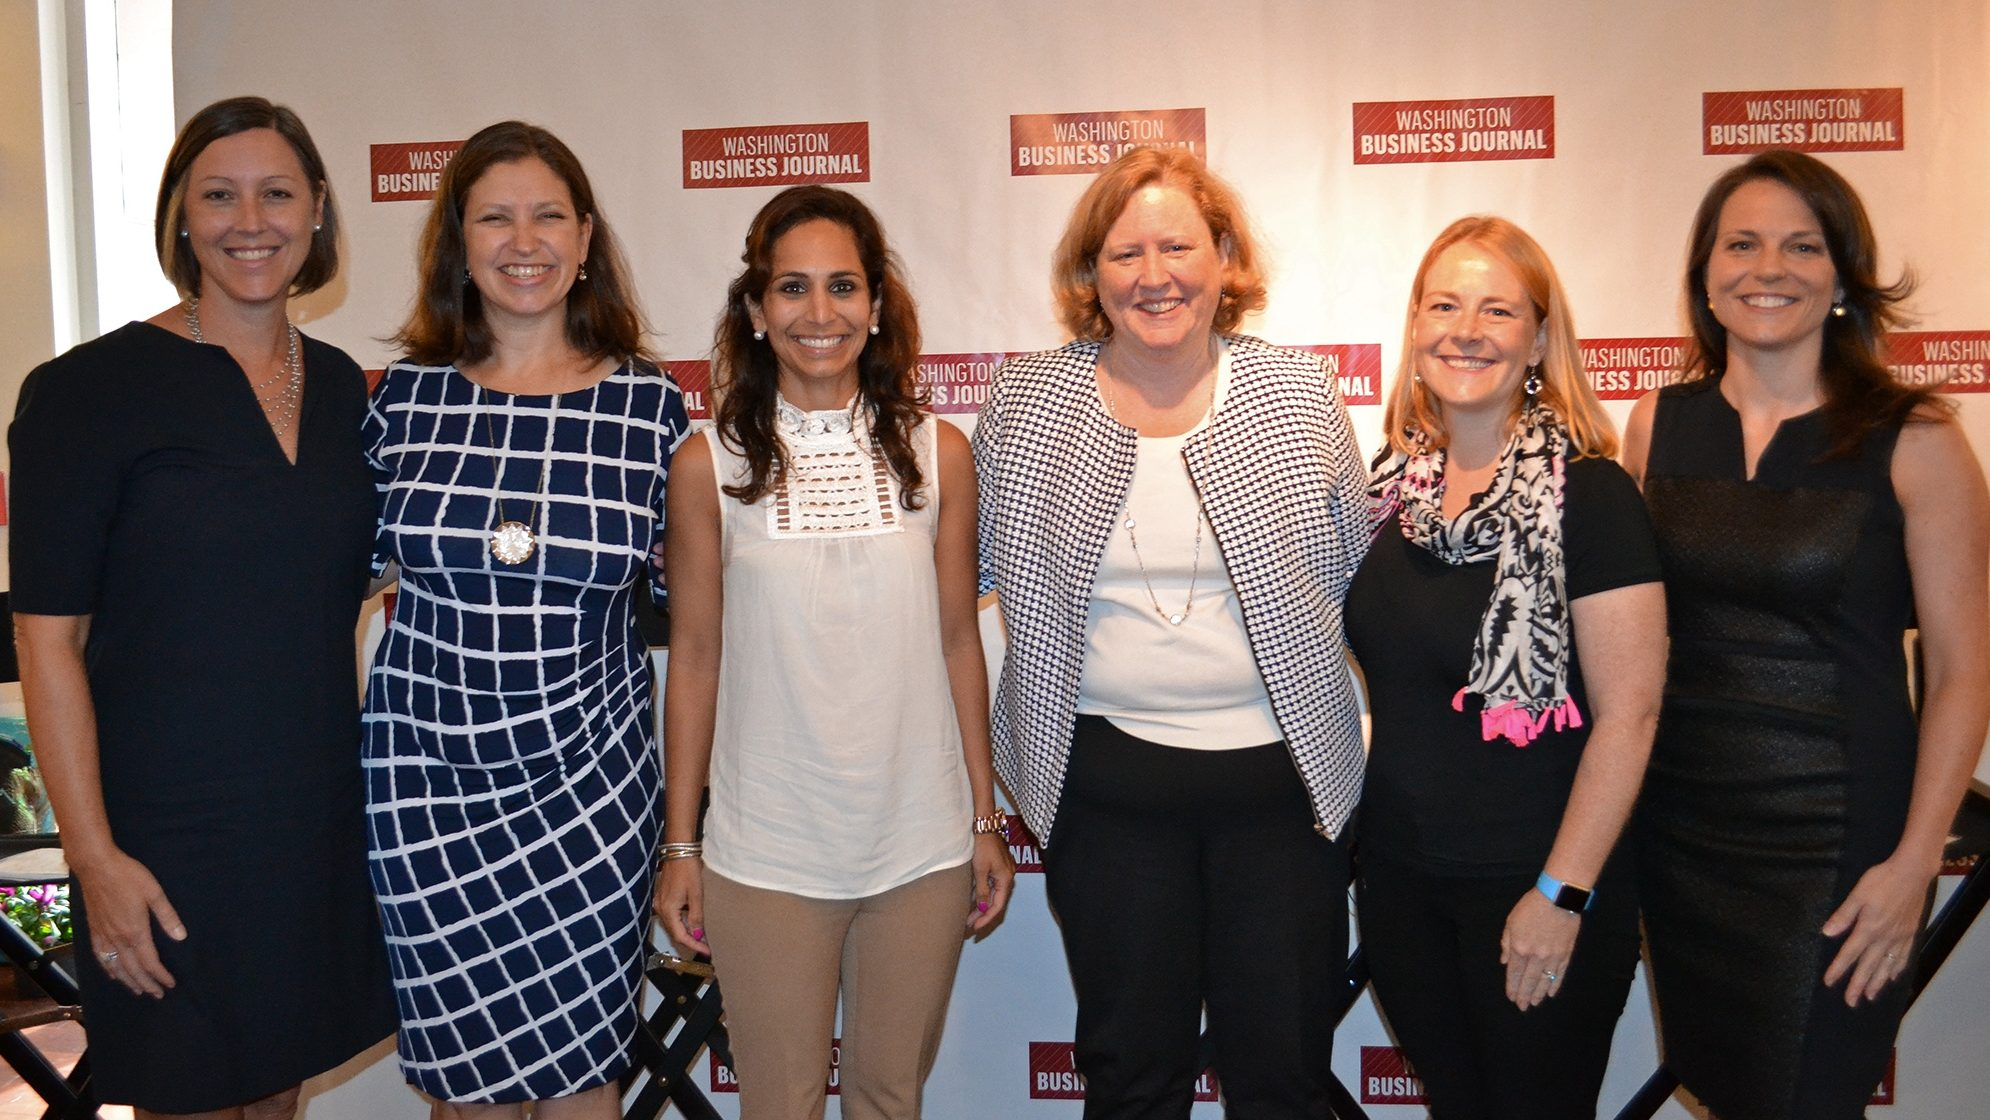 women-who-lead-panel-event-in-washington-d-c